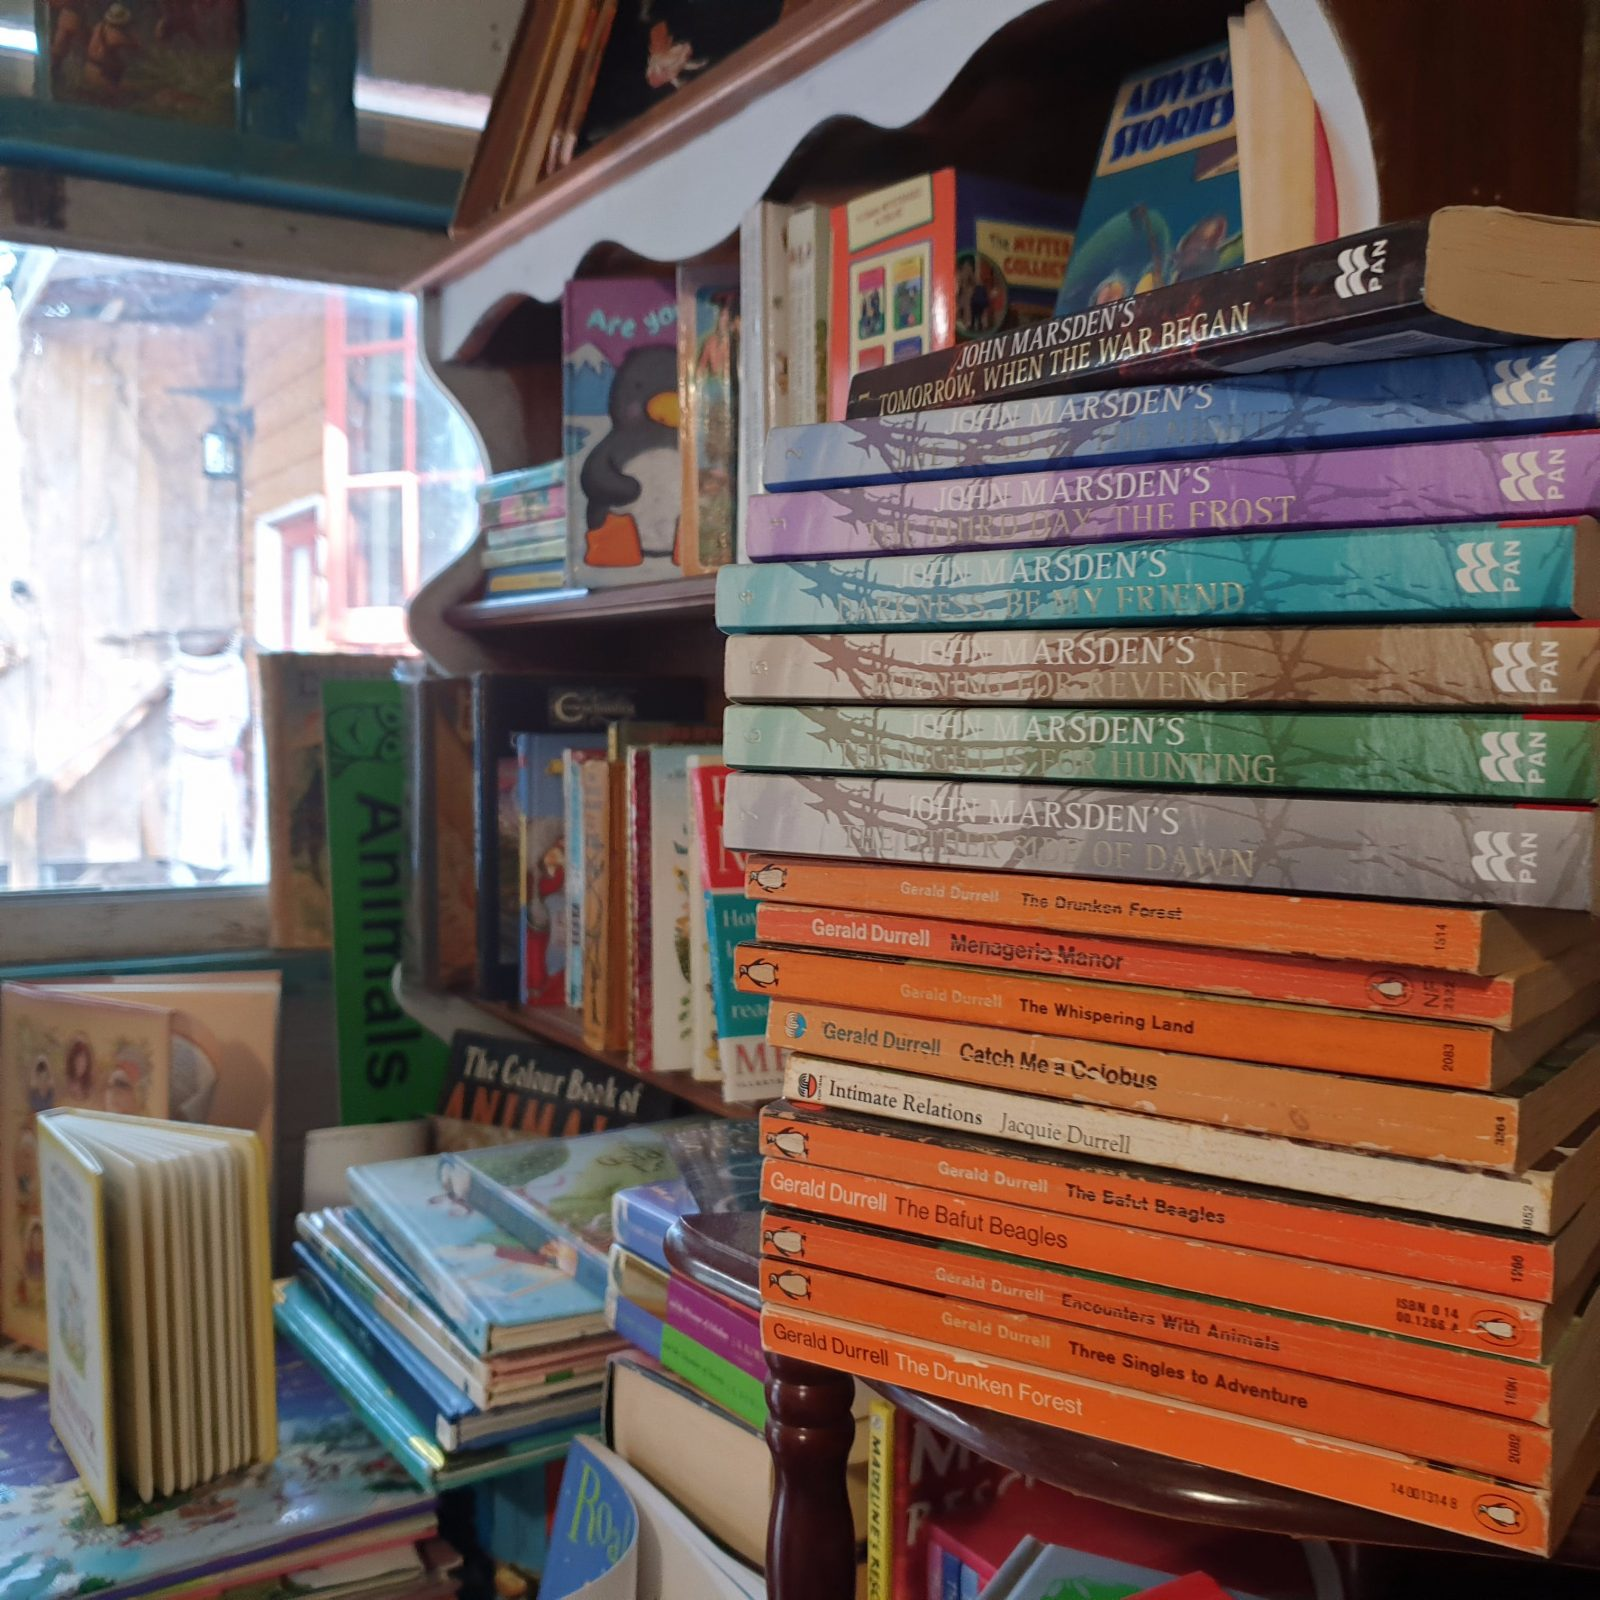 An emporium of fine literature, new and used, 1st editions and rare collectibles